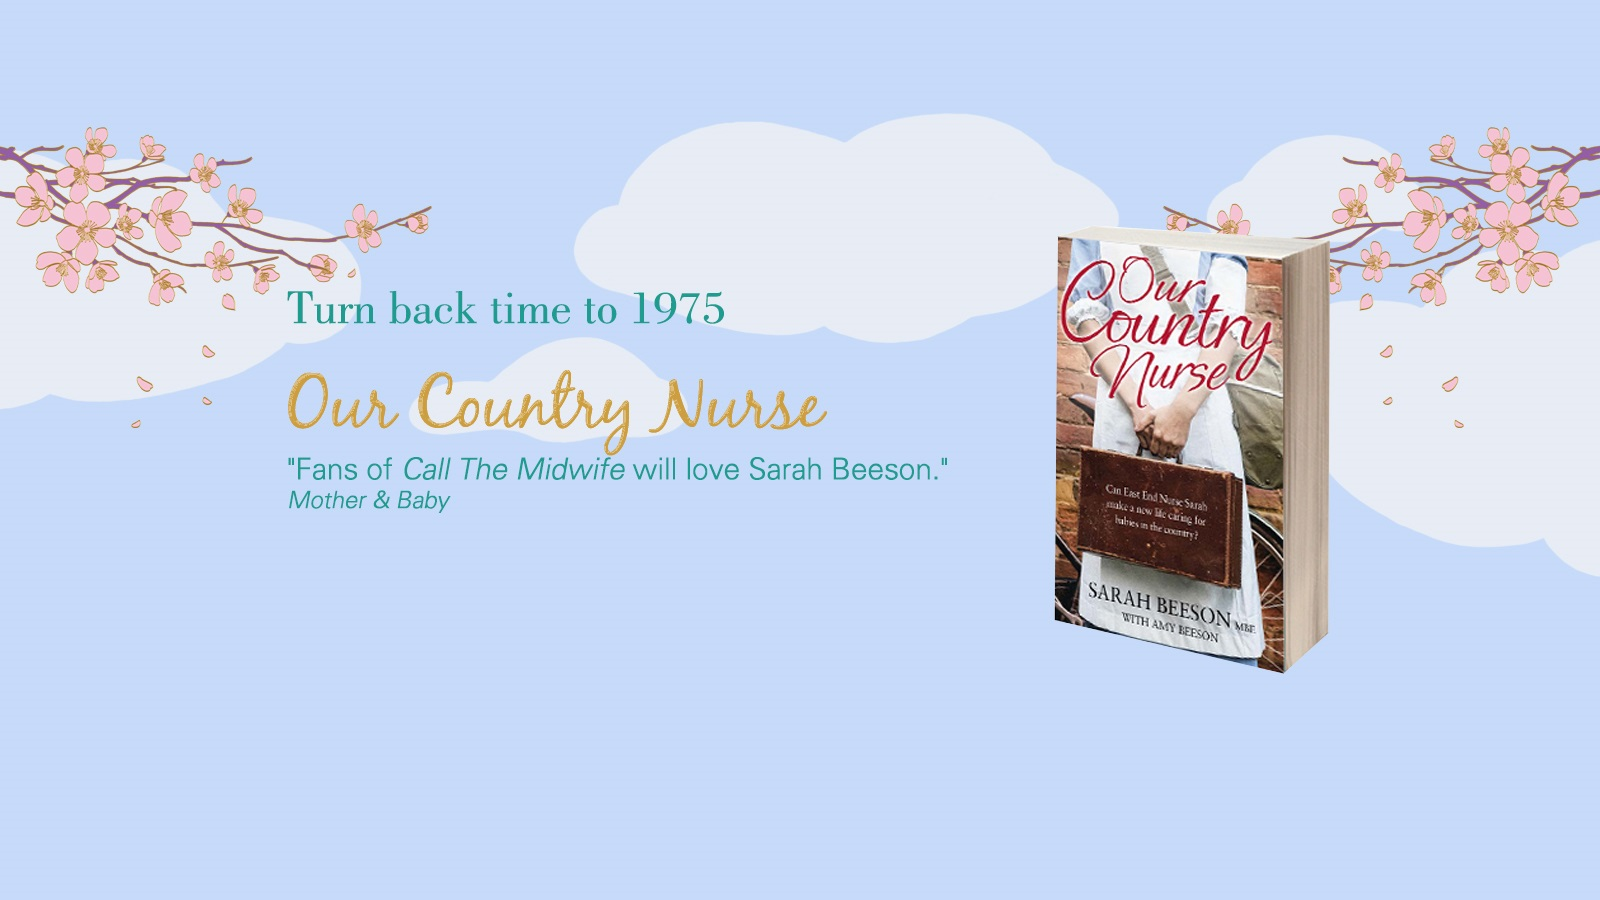 SarahBeeson_OurCountryNurse_TwitterBanner_New